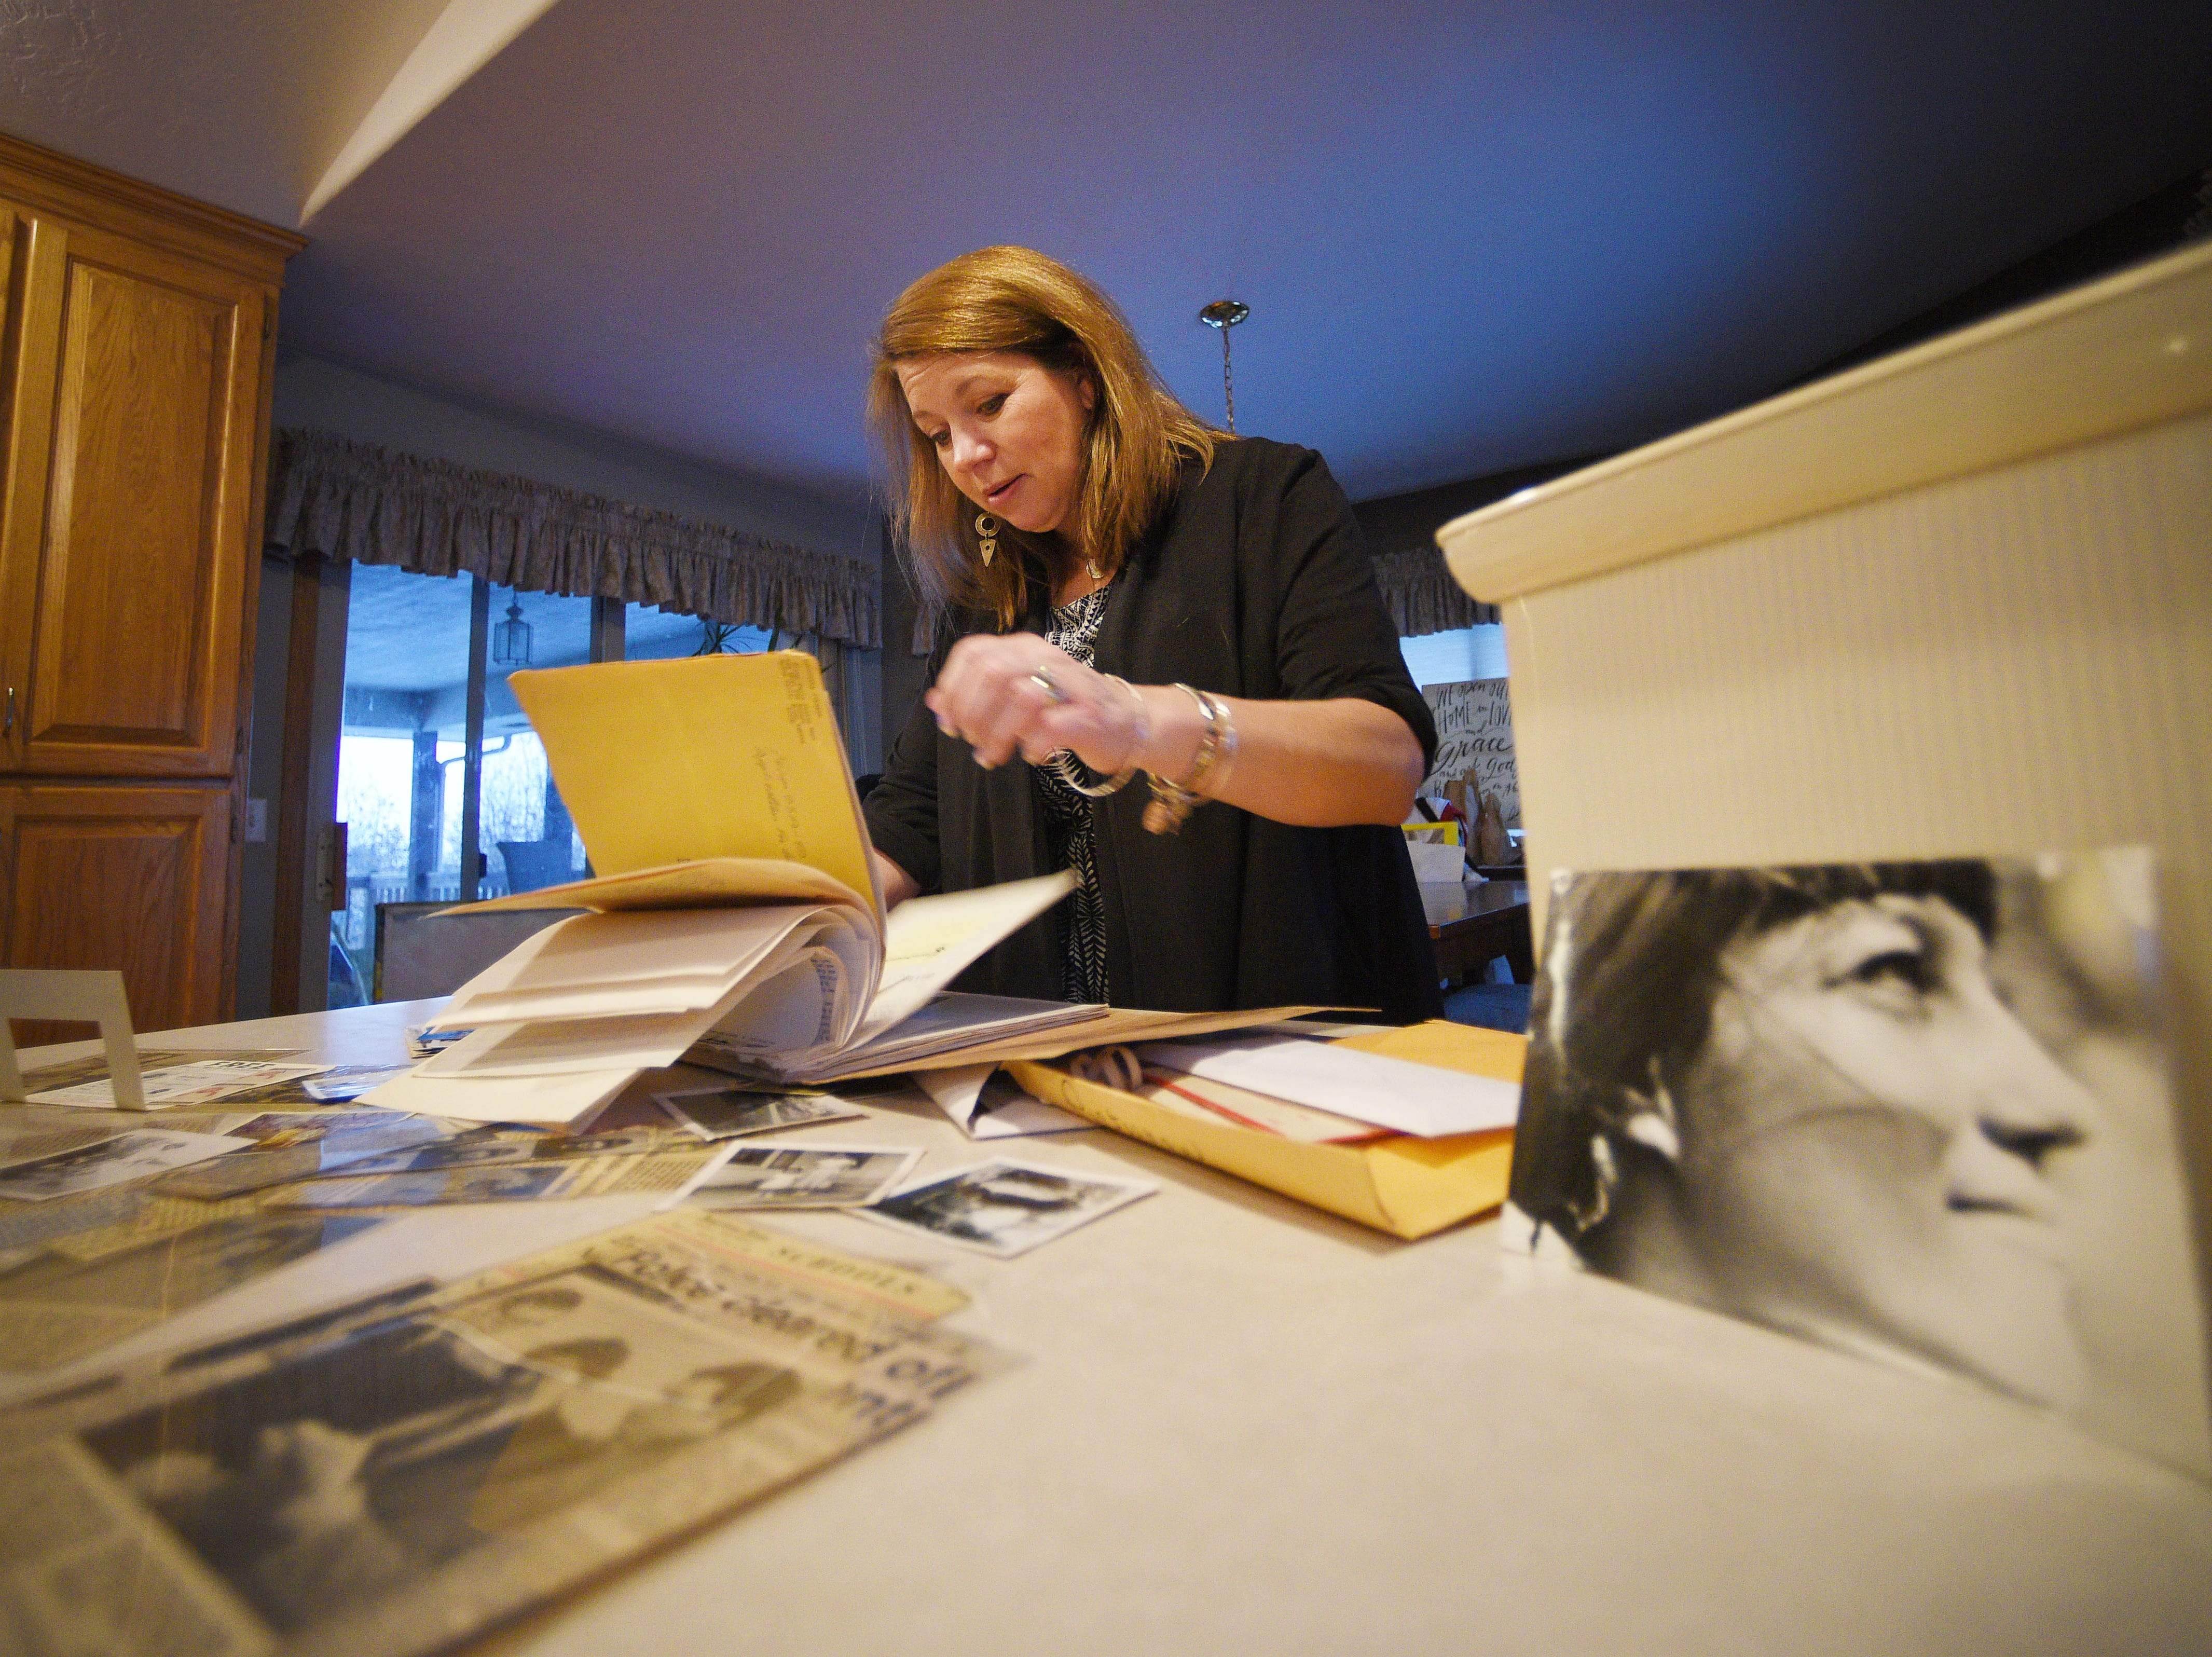 Elizabeth Crow, Ellabeth Lodermeier's niece, talks about her brief memories of her aunt Friday, Dec. 6, at her home in Sioux Falls. Crow was 7 years old when Ellabeth disappeared in 1974. Elizabeth's mom, Sandra Herman, never stopped trying to get answers to her sister's disappearance.